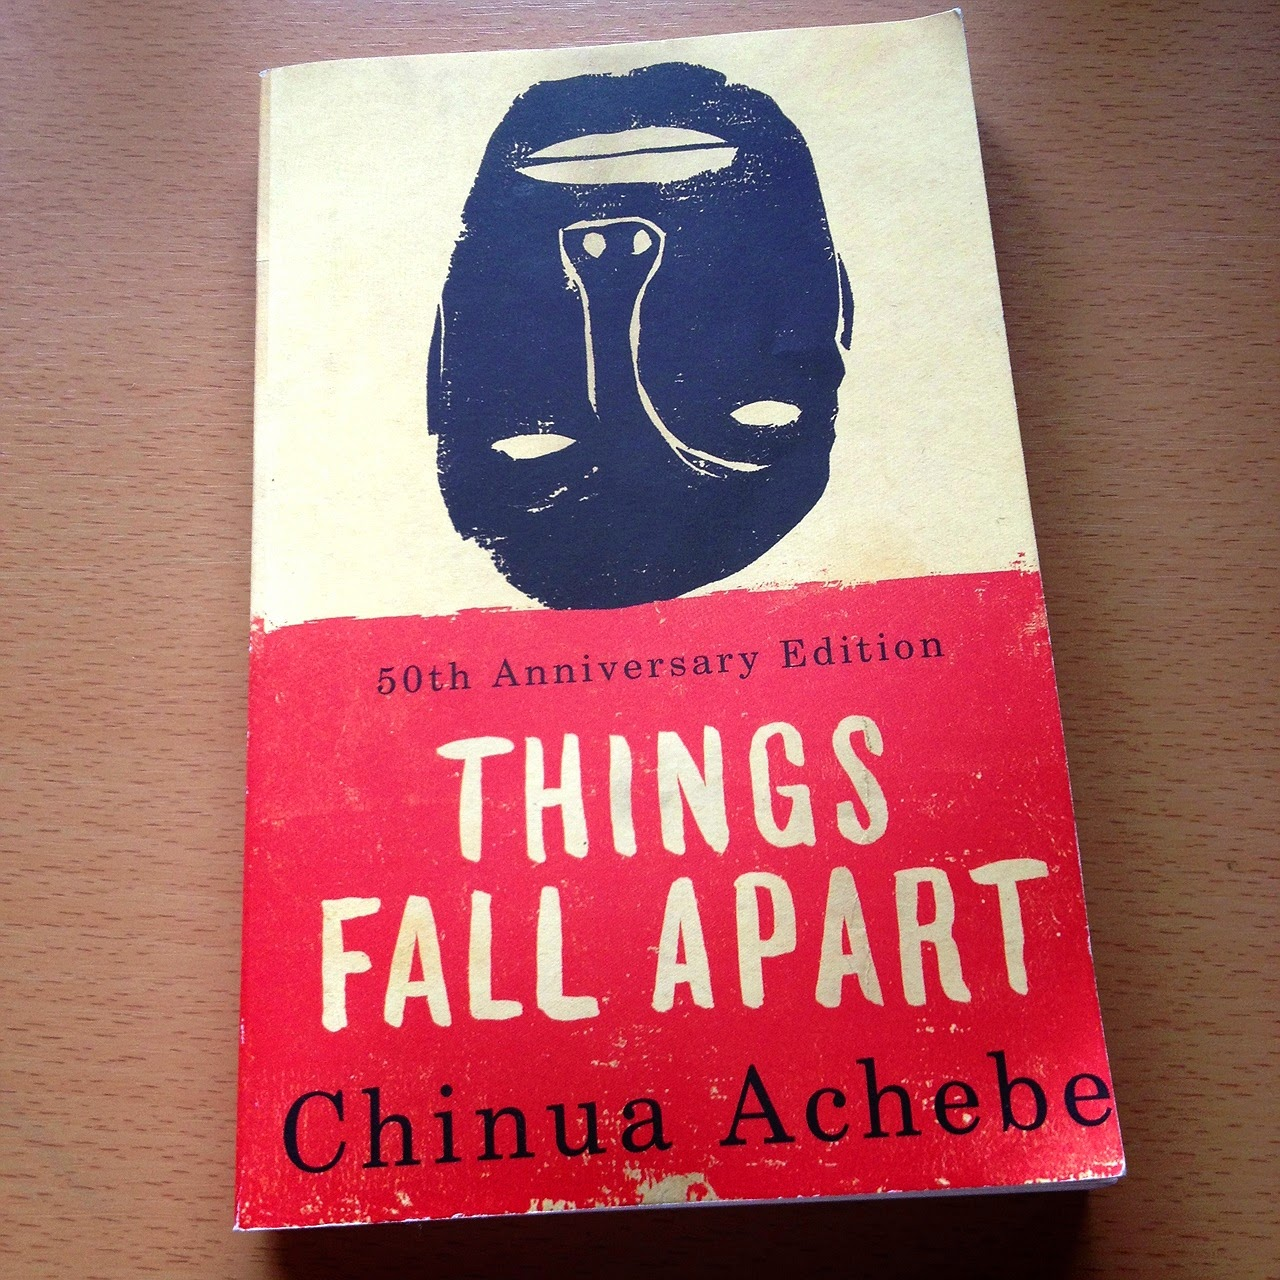 okonkwo s downfall things fall apart chinua achebe In the novel things fall apart by chinua achebe, things fall apart for the character okonkwo because of his character traits okonkwo is a very structured man with little patience for whatever he believes is wrong.